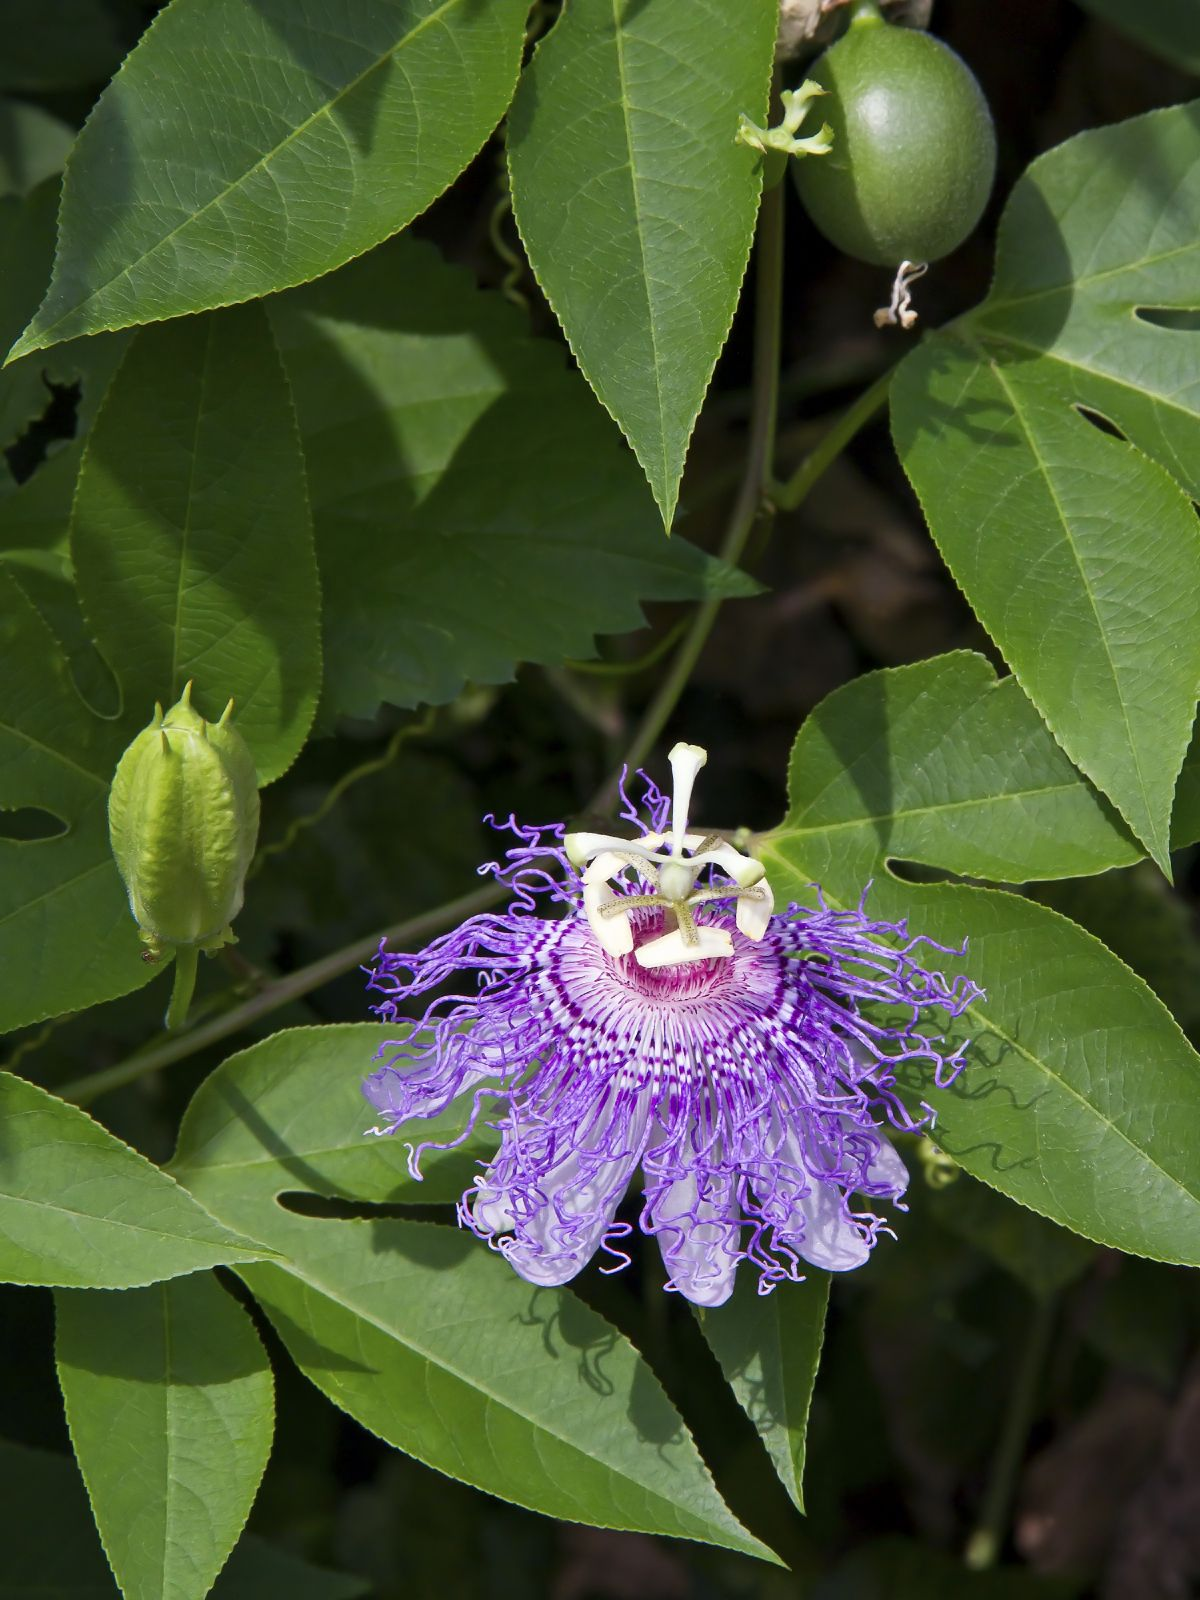 Passion Flower Not Fruiting Why Passion Vine Flowers But Has No Fruit Passion Fruit Flower Passion Fruit Plant Passion Vine